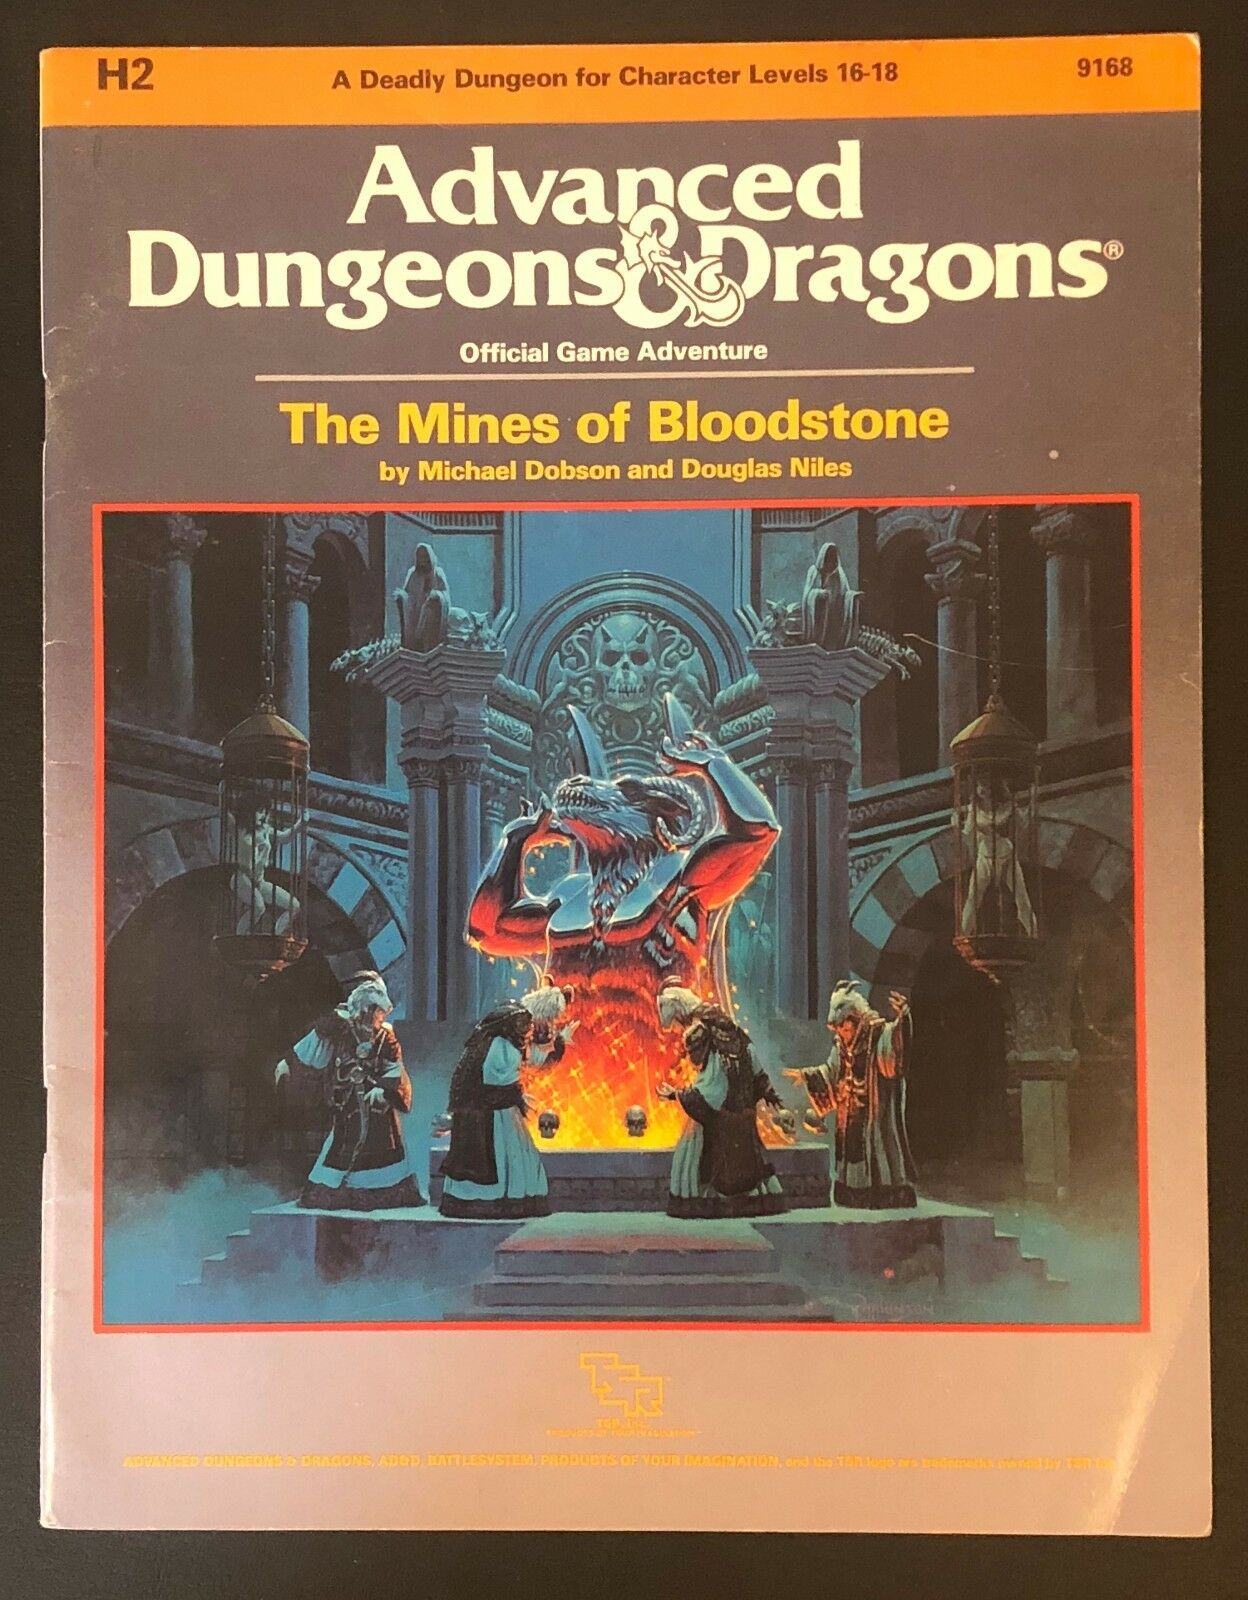 H2 The Mines of Bloodstone TSR Advanced Dungeons & Dragons